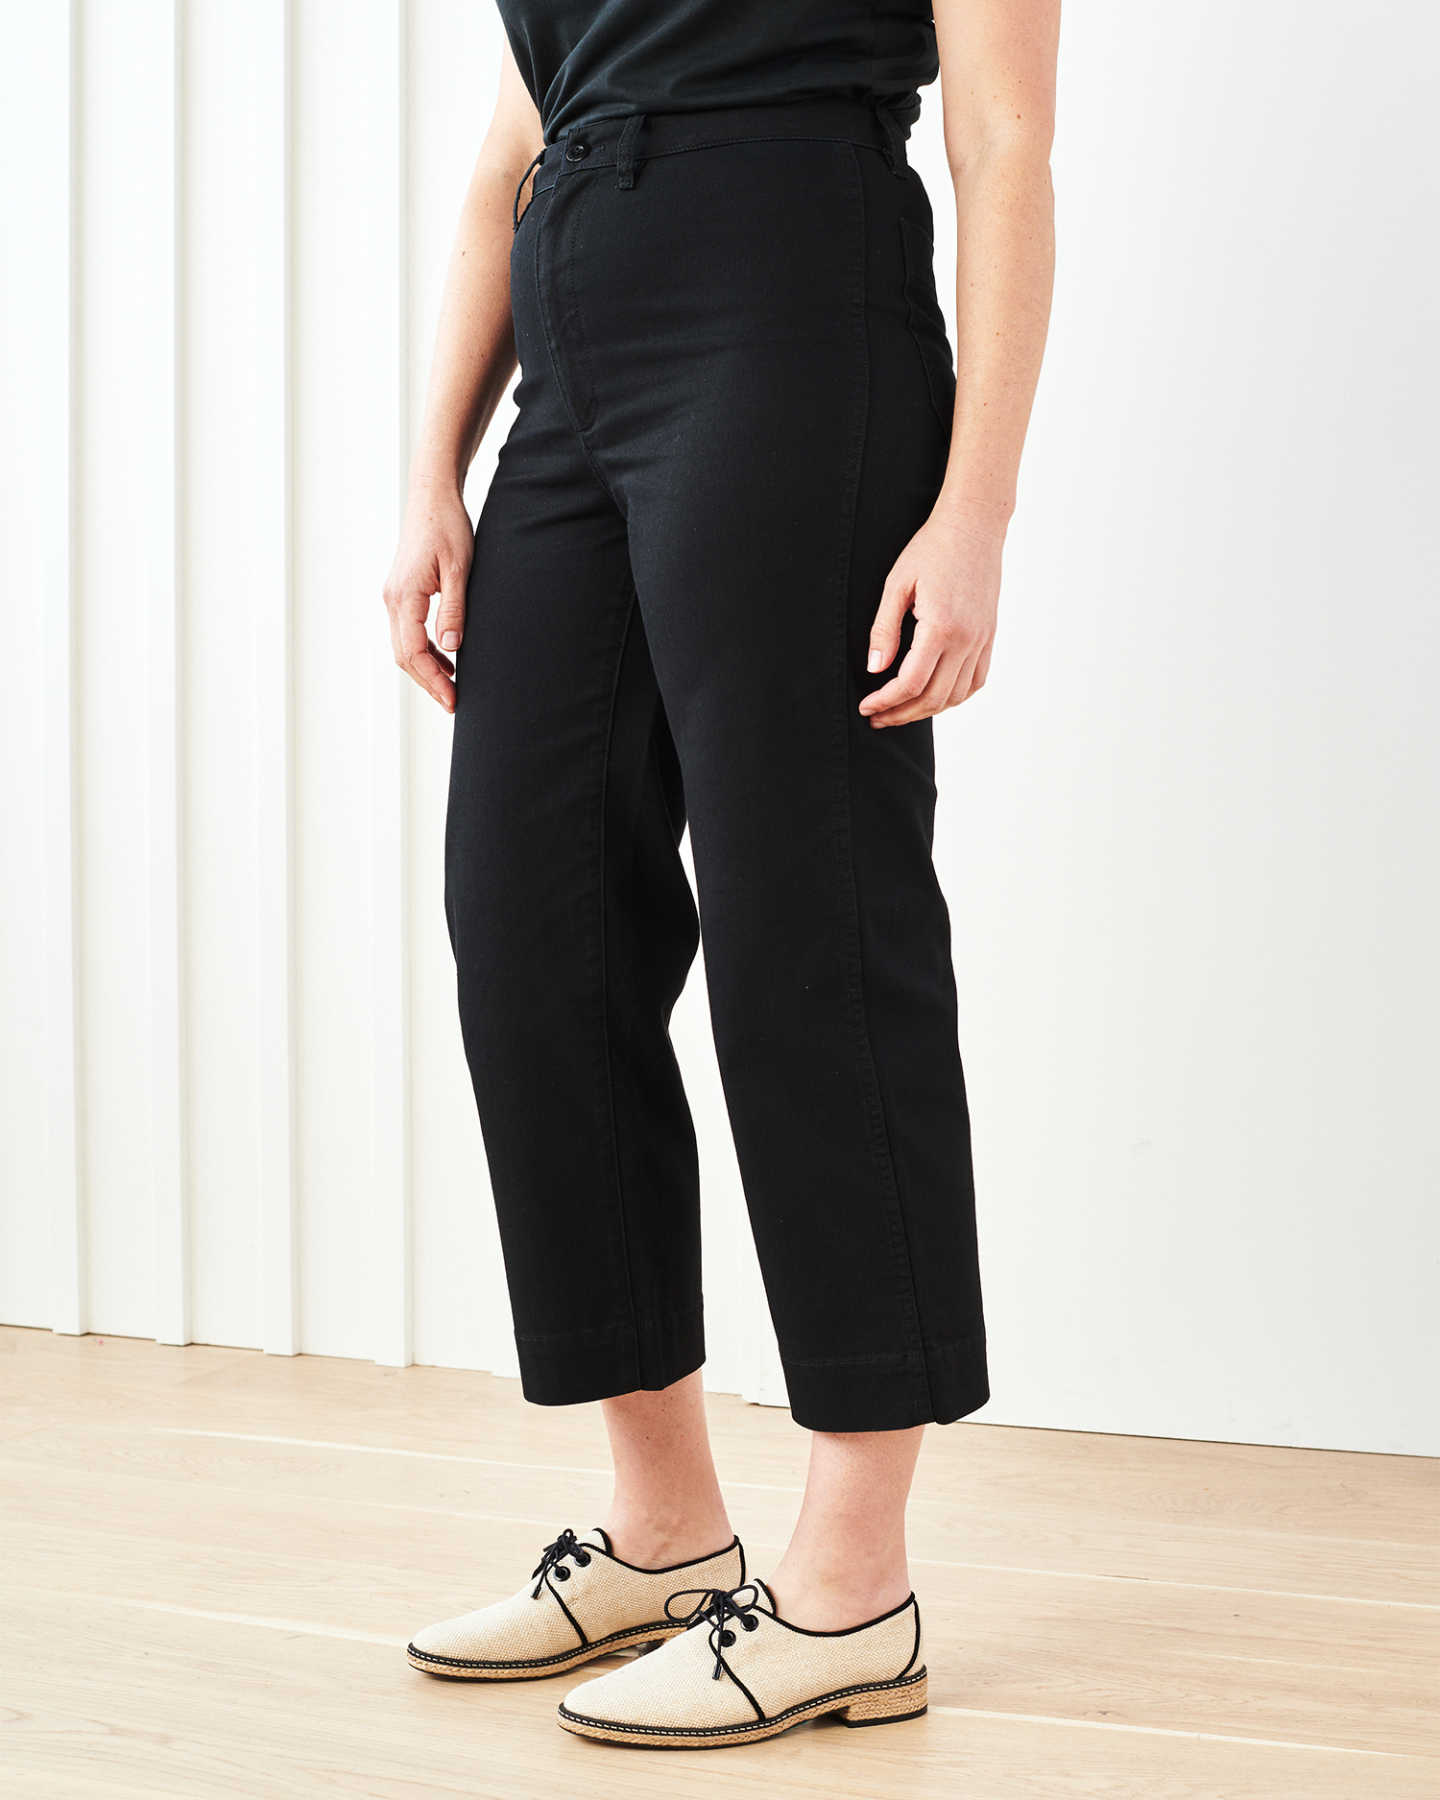 Stretch Cotton Twill Wide-Leg Crop Pant - Black - 10 - Thumbnail